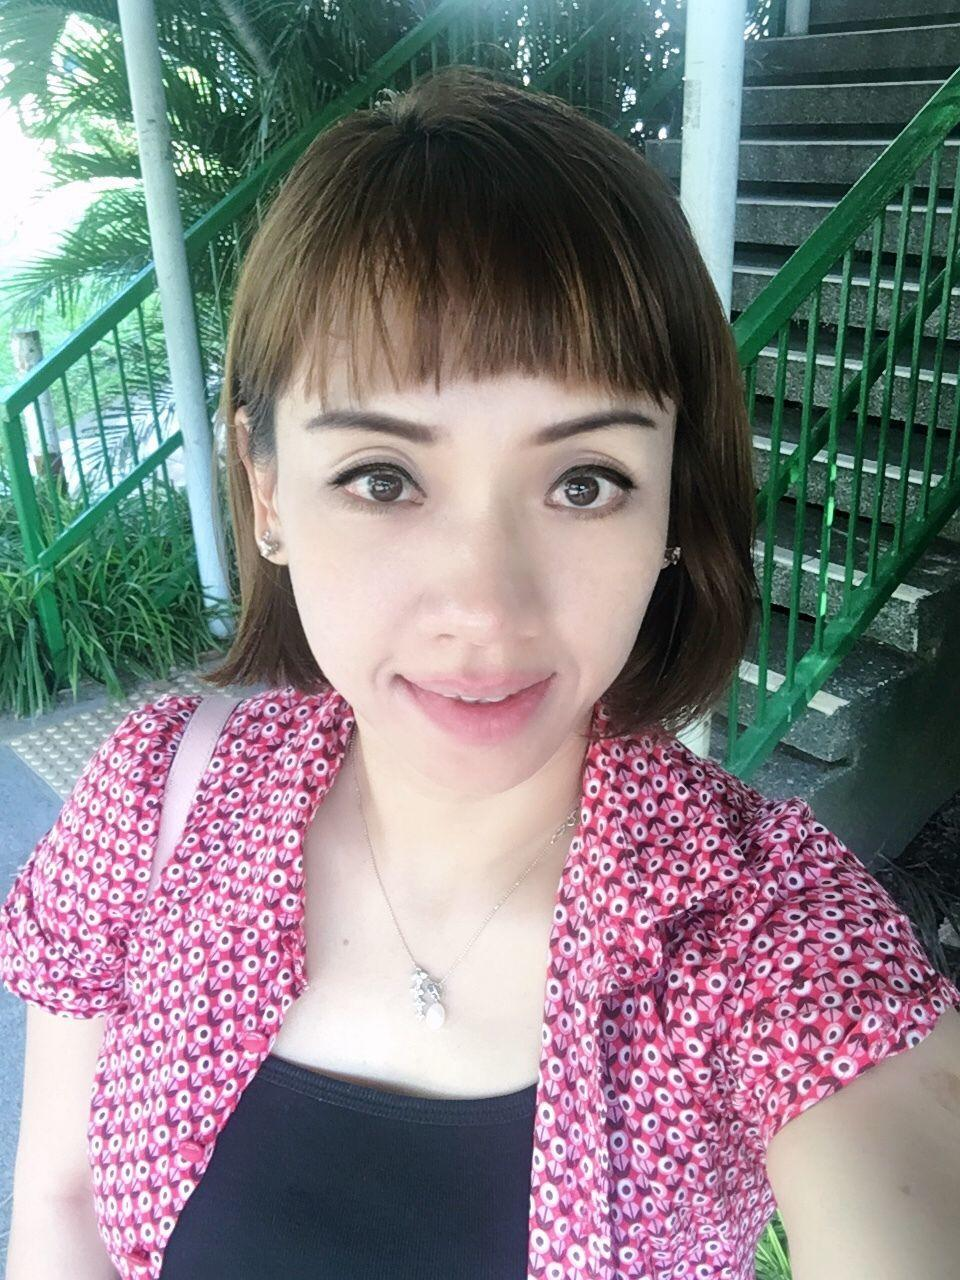 Personals in Dating Singapore